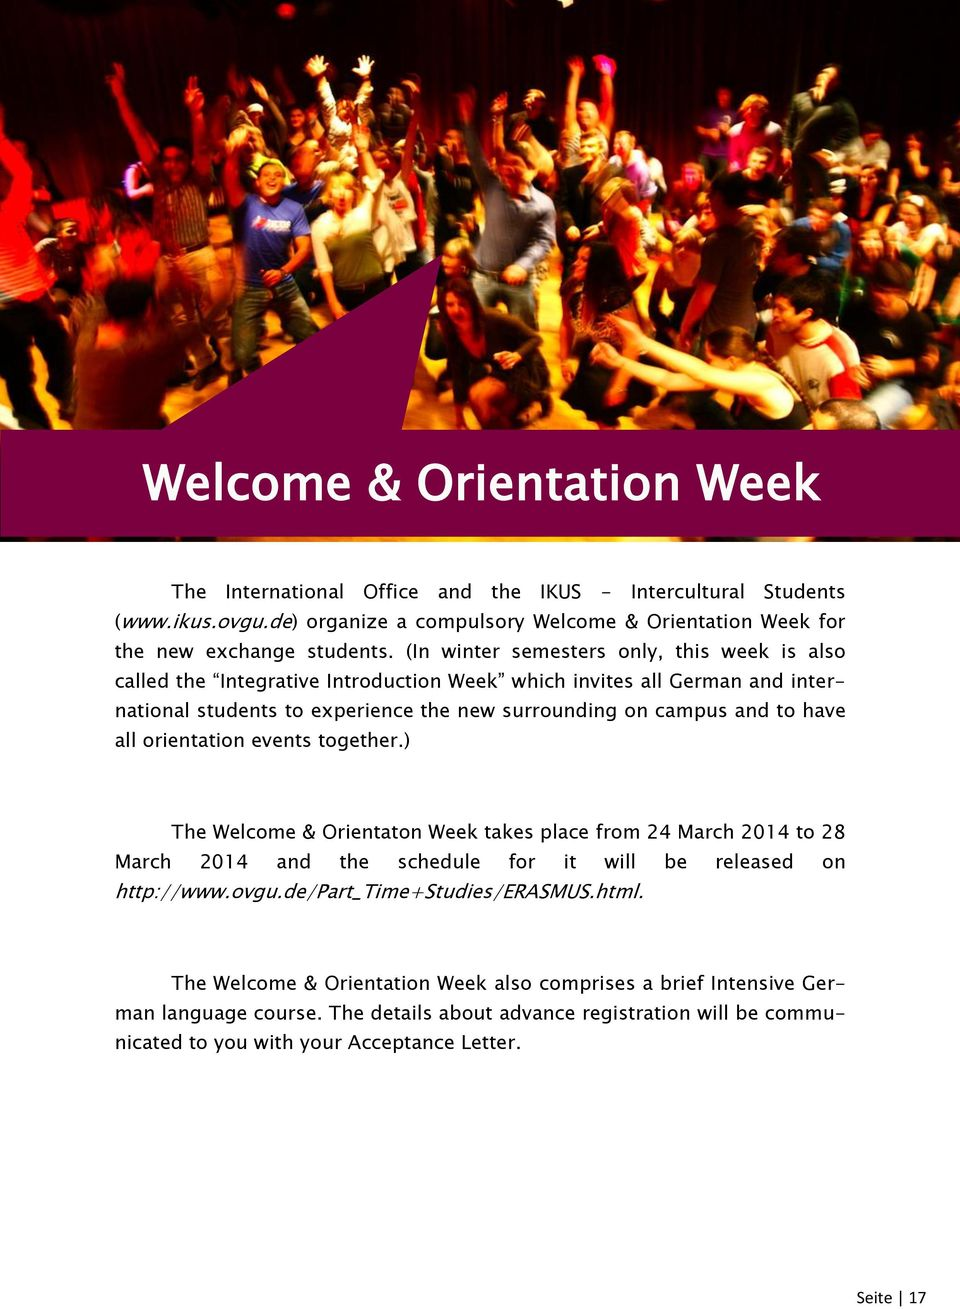 all orientation events together.) The Welcome & Orientaton Week takes place from 24 March 2014 to 28 March 2014 and the schedule for it will be released on http://www.ovgu.